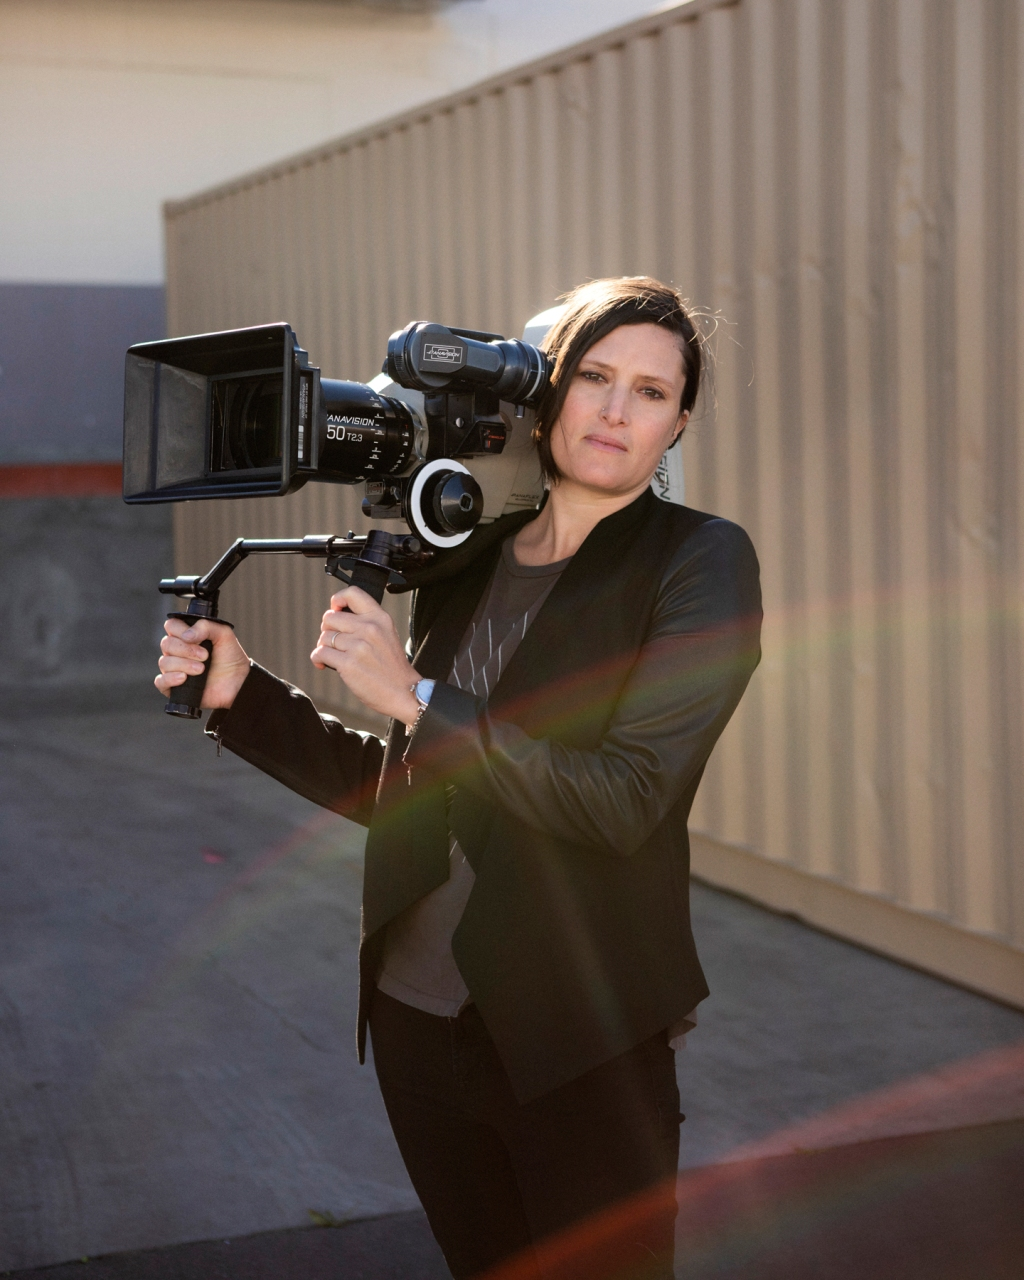 The cinematographer is the first woman in her field ever nominated for an Oscar — and she's just getting started. Read the story